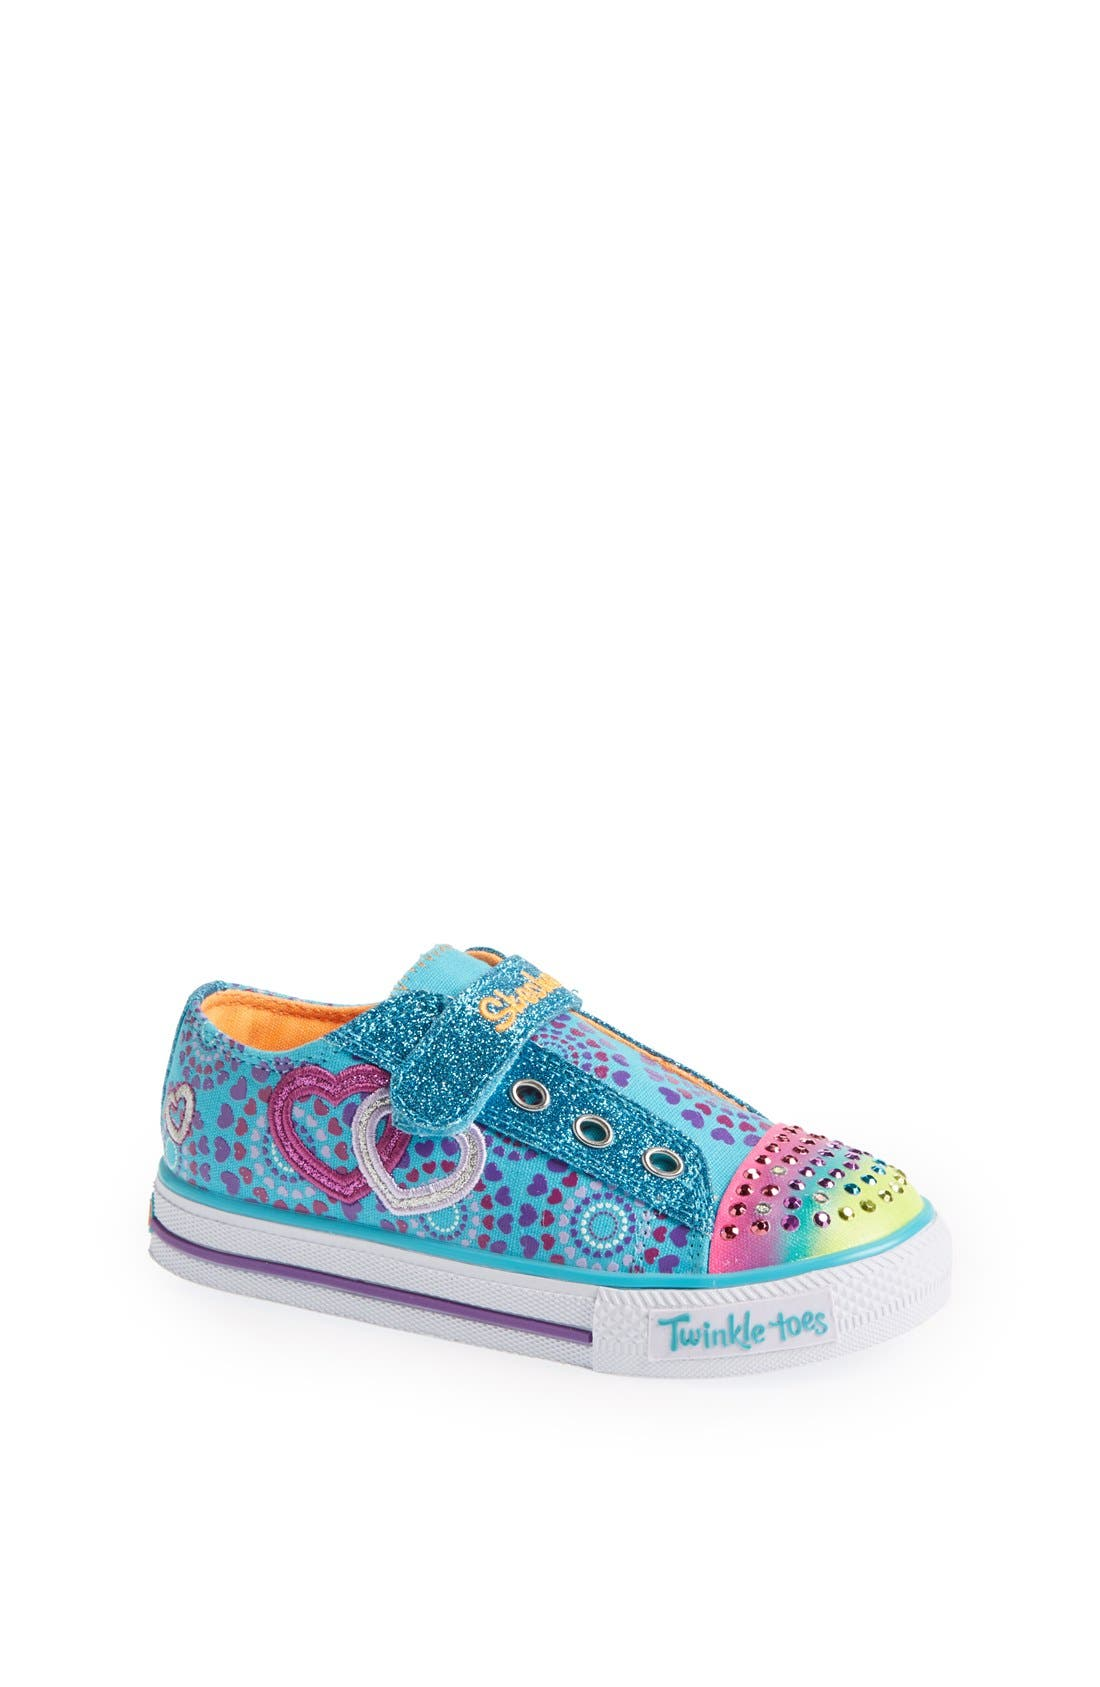 Main Image - SKECHERS 'Shuffles - Love Burst' Sneaker (Toddler)